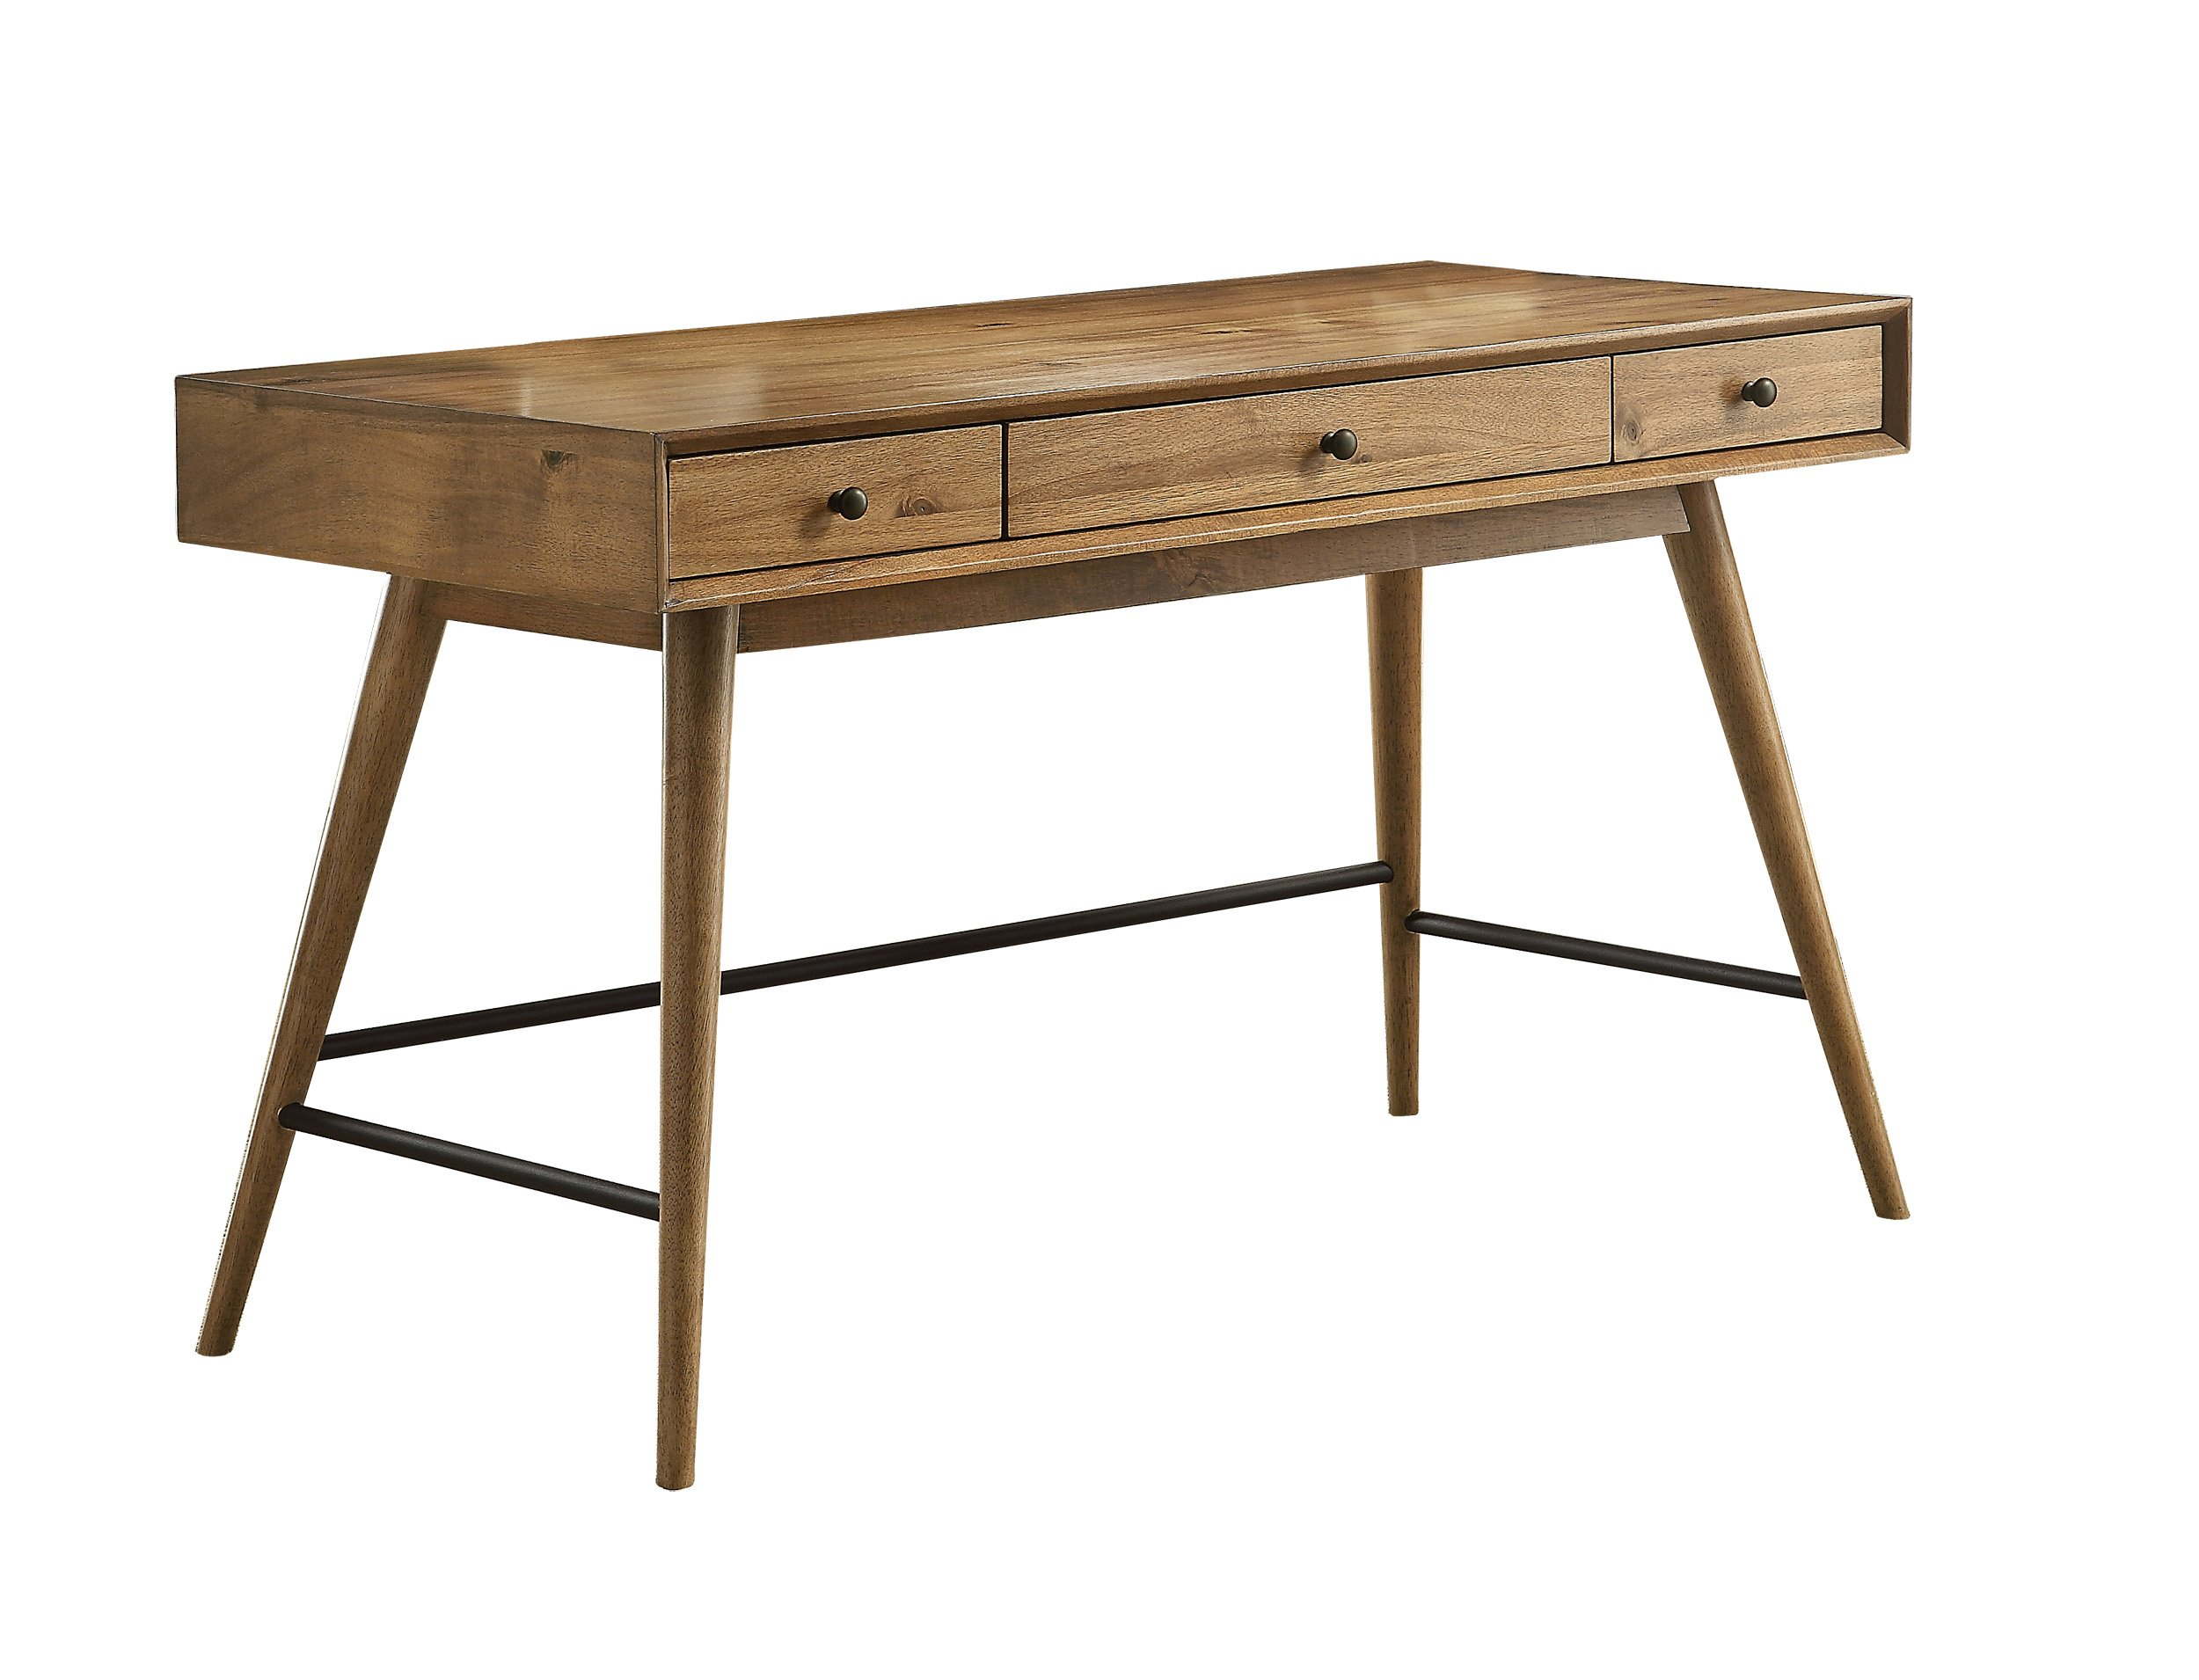 Homelegance Lavi Writing Desk with Drawers and Tapered Legs, Pine Finished